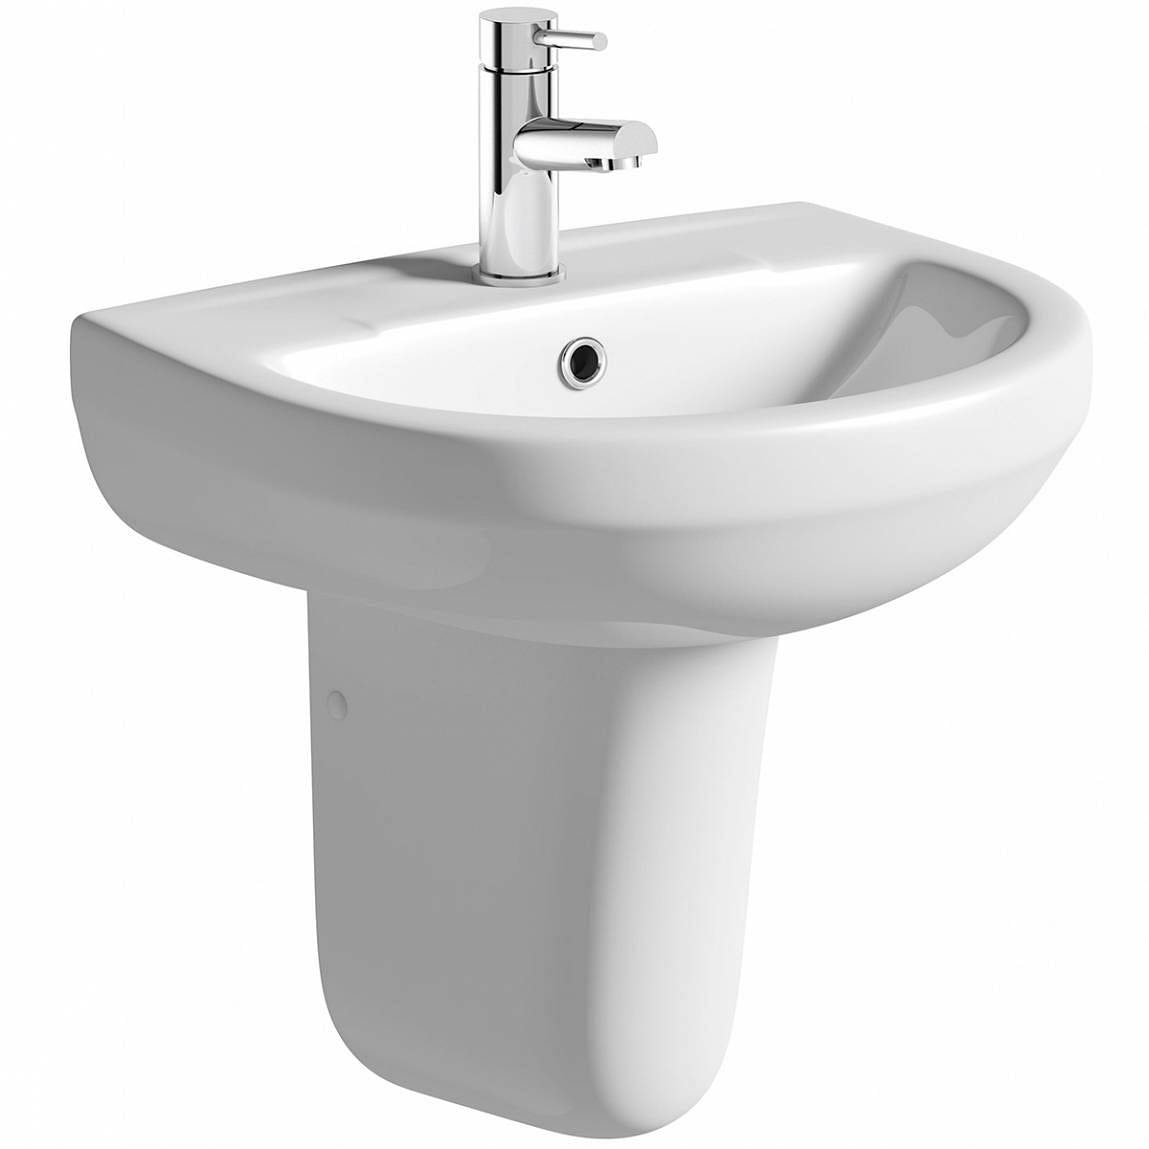 Orchard Wharfe 1 tap hole semi pedestal basin 550mm with waste